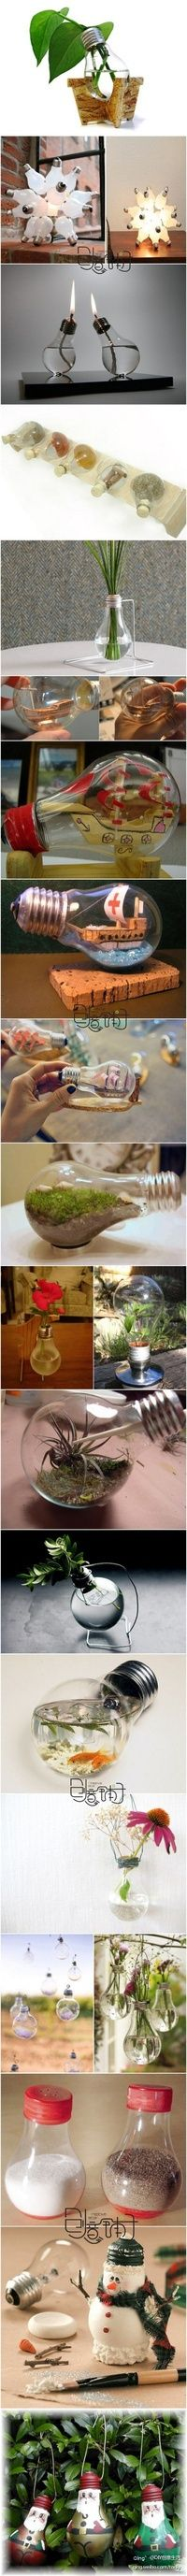 New uses for an old lightbulb - wow!